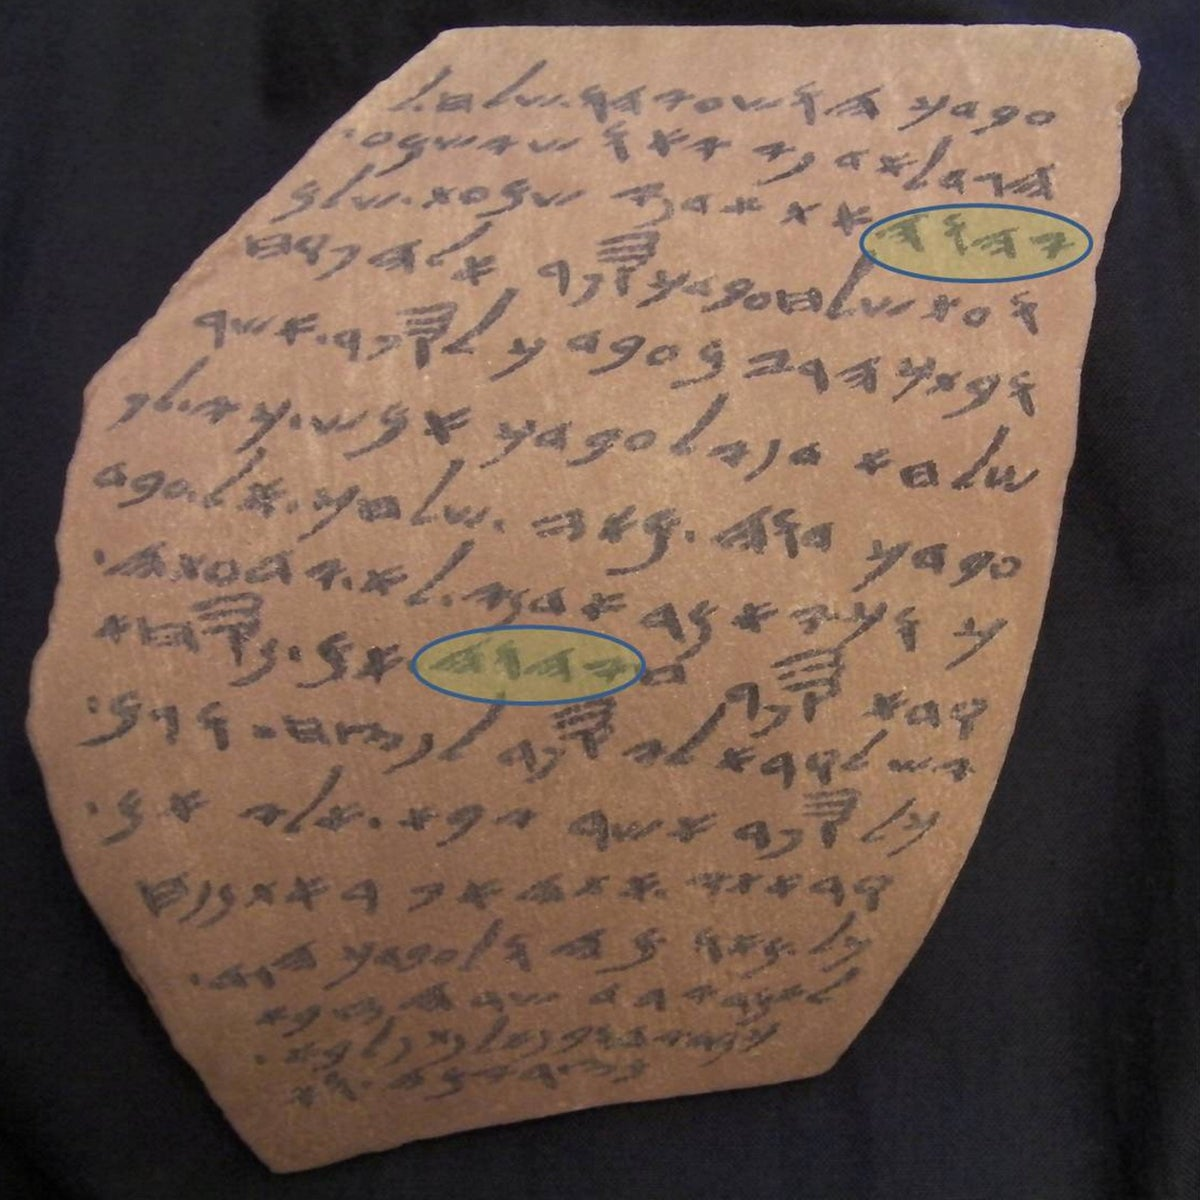 This is a letter from the very end of the First Temple period, found in Lachish. It shows that people were comfortable writing god's name on day to day letters and used it in greetings.